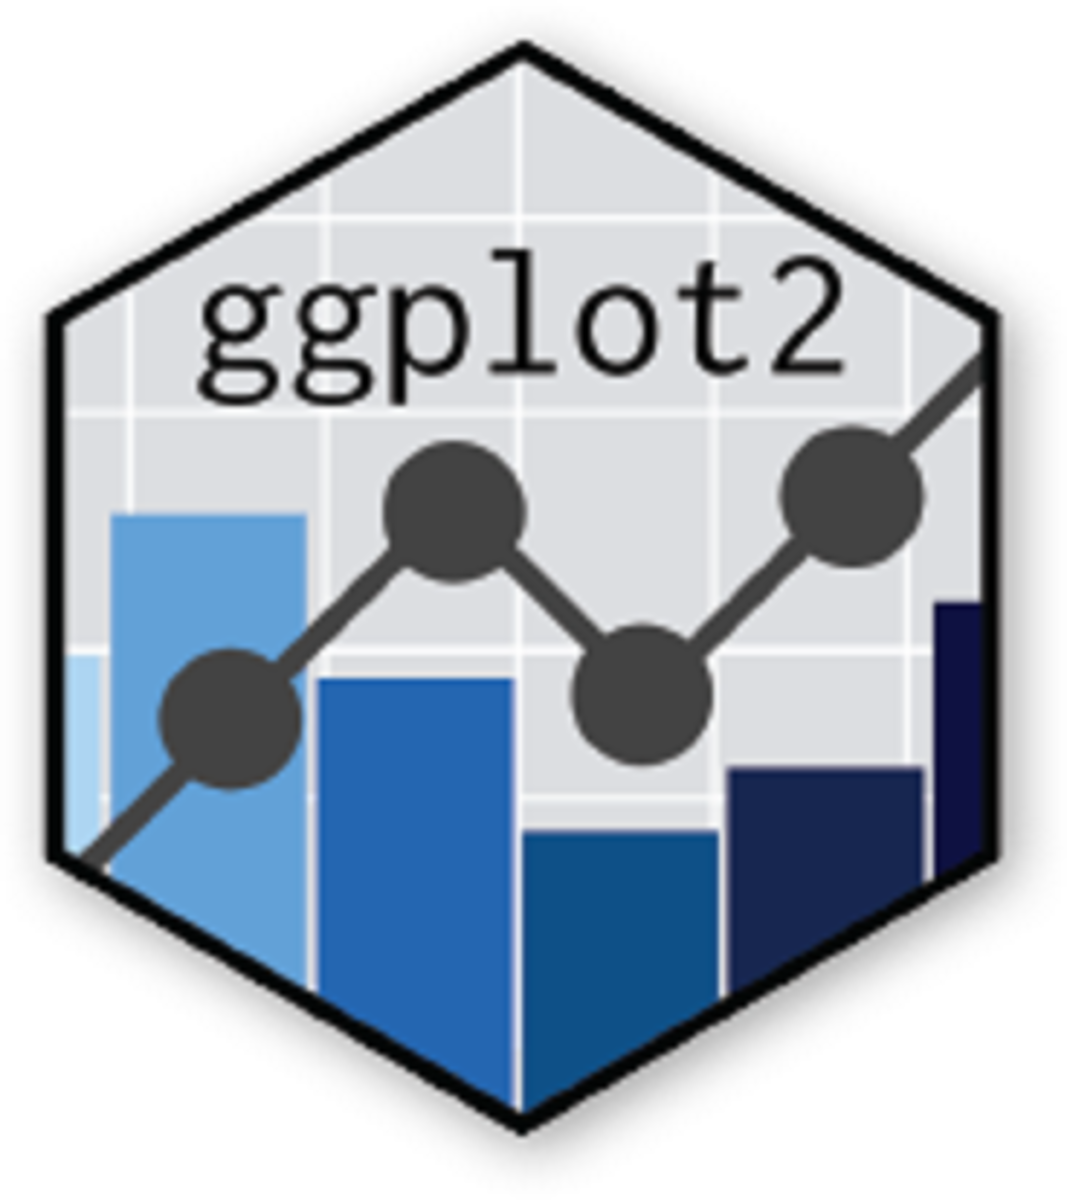 Starting With ggplot2 in R